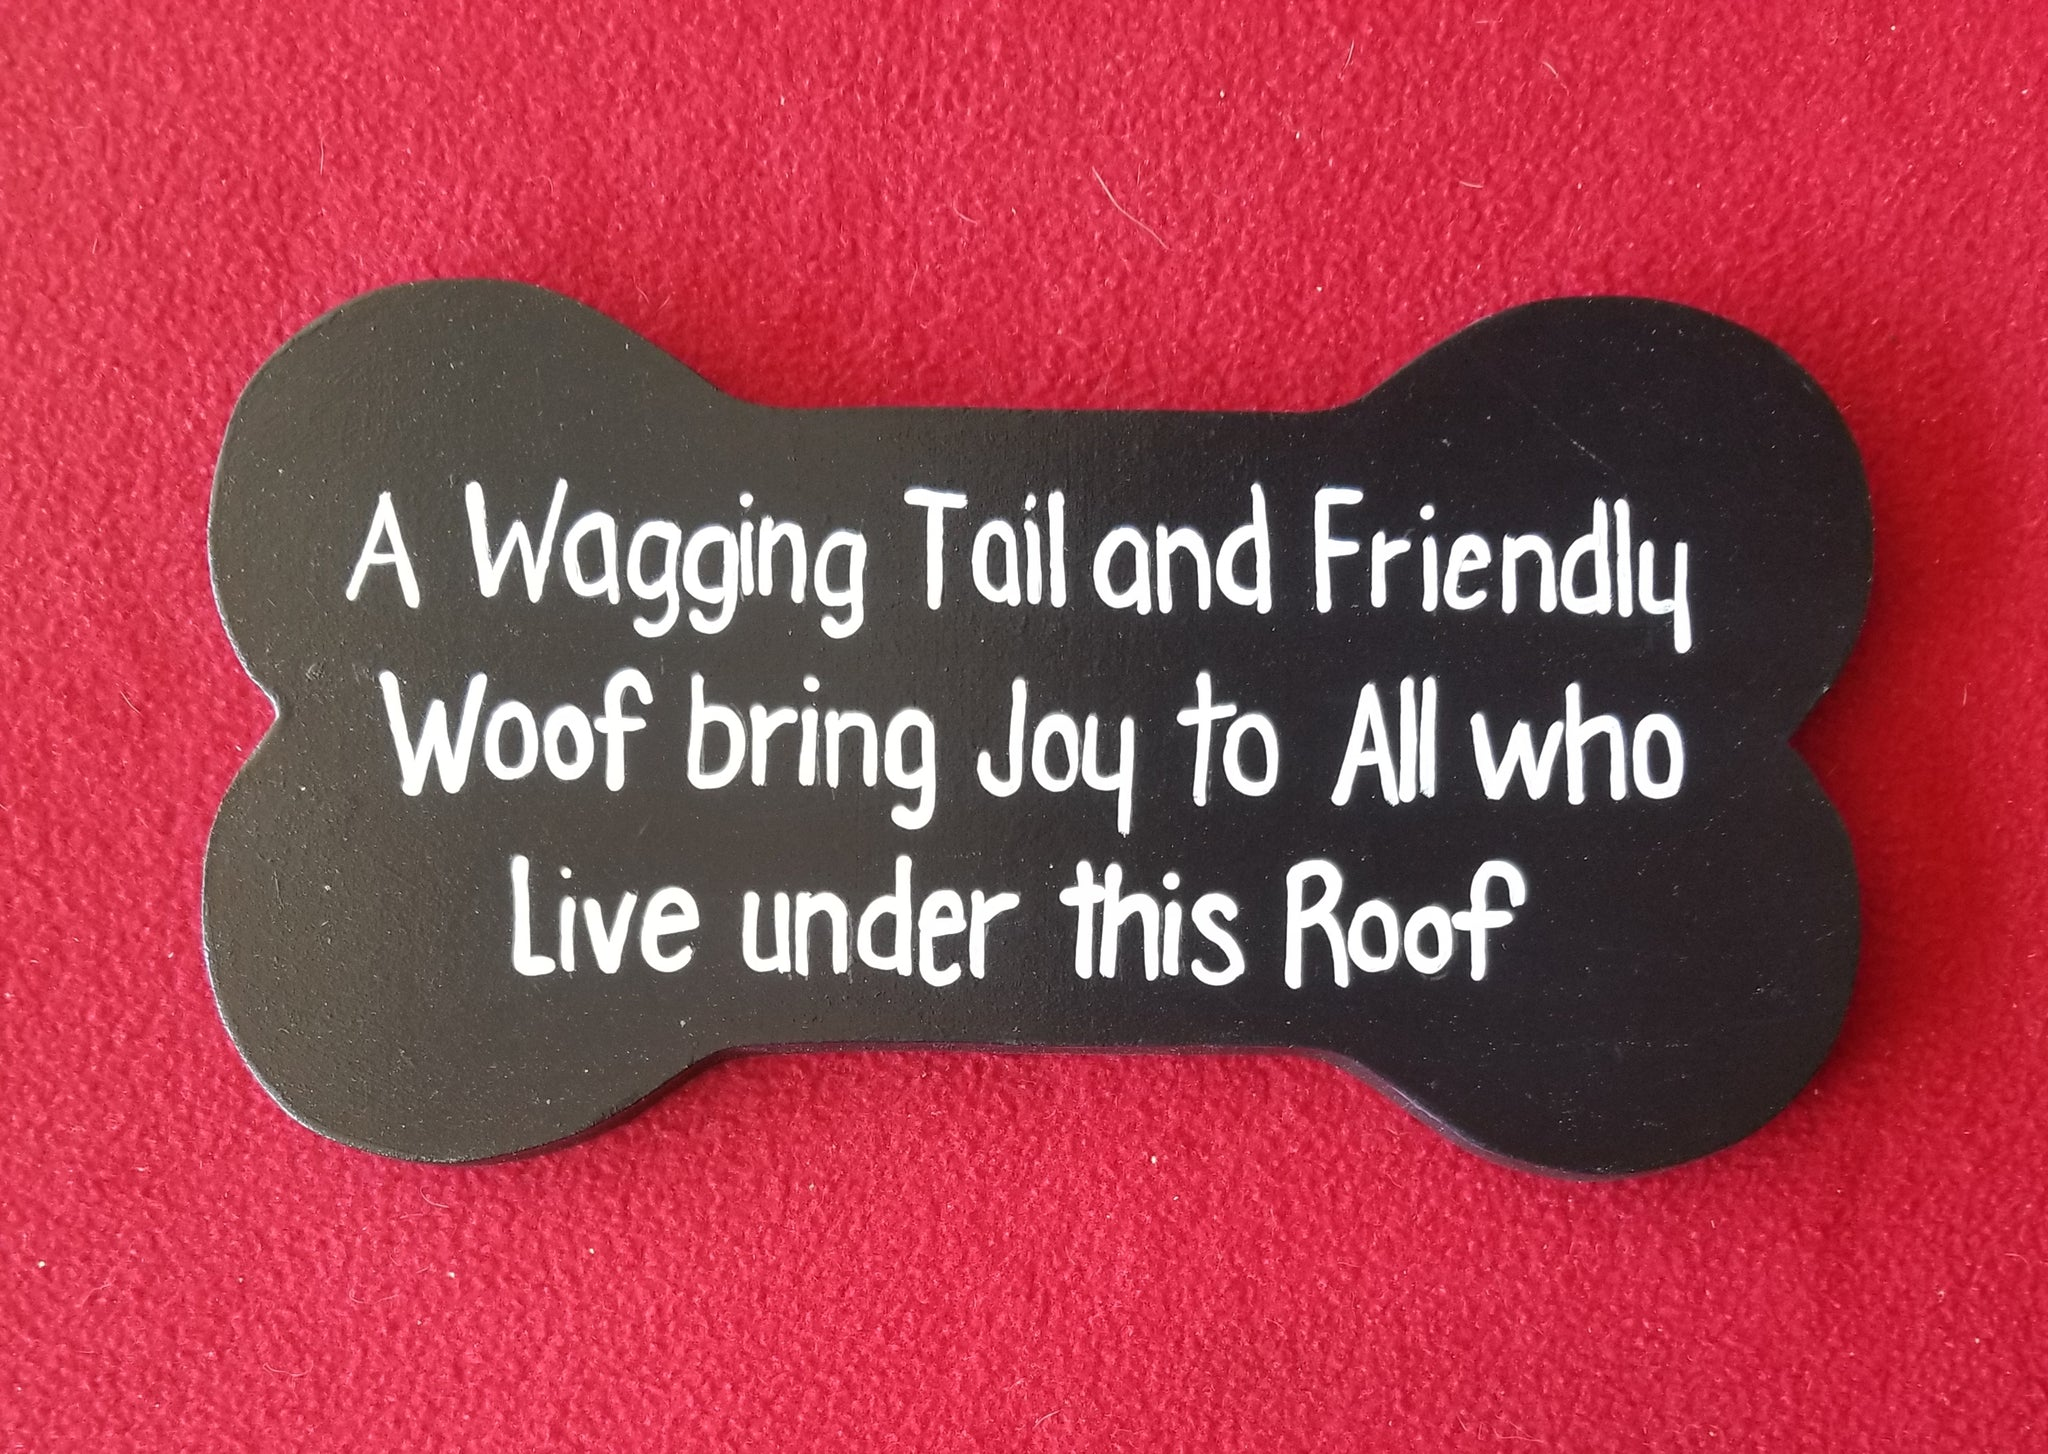 A wagging tail and friendly woof bring joy to all who live under this roof.